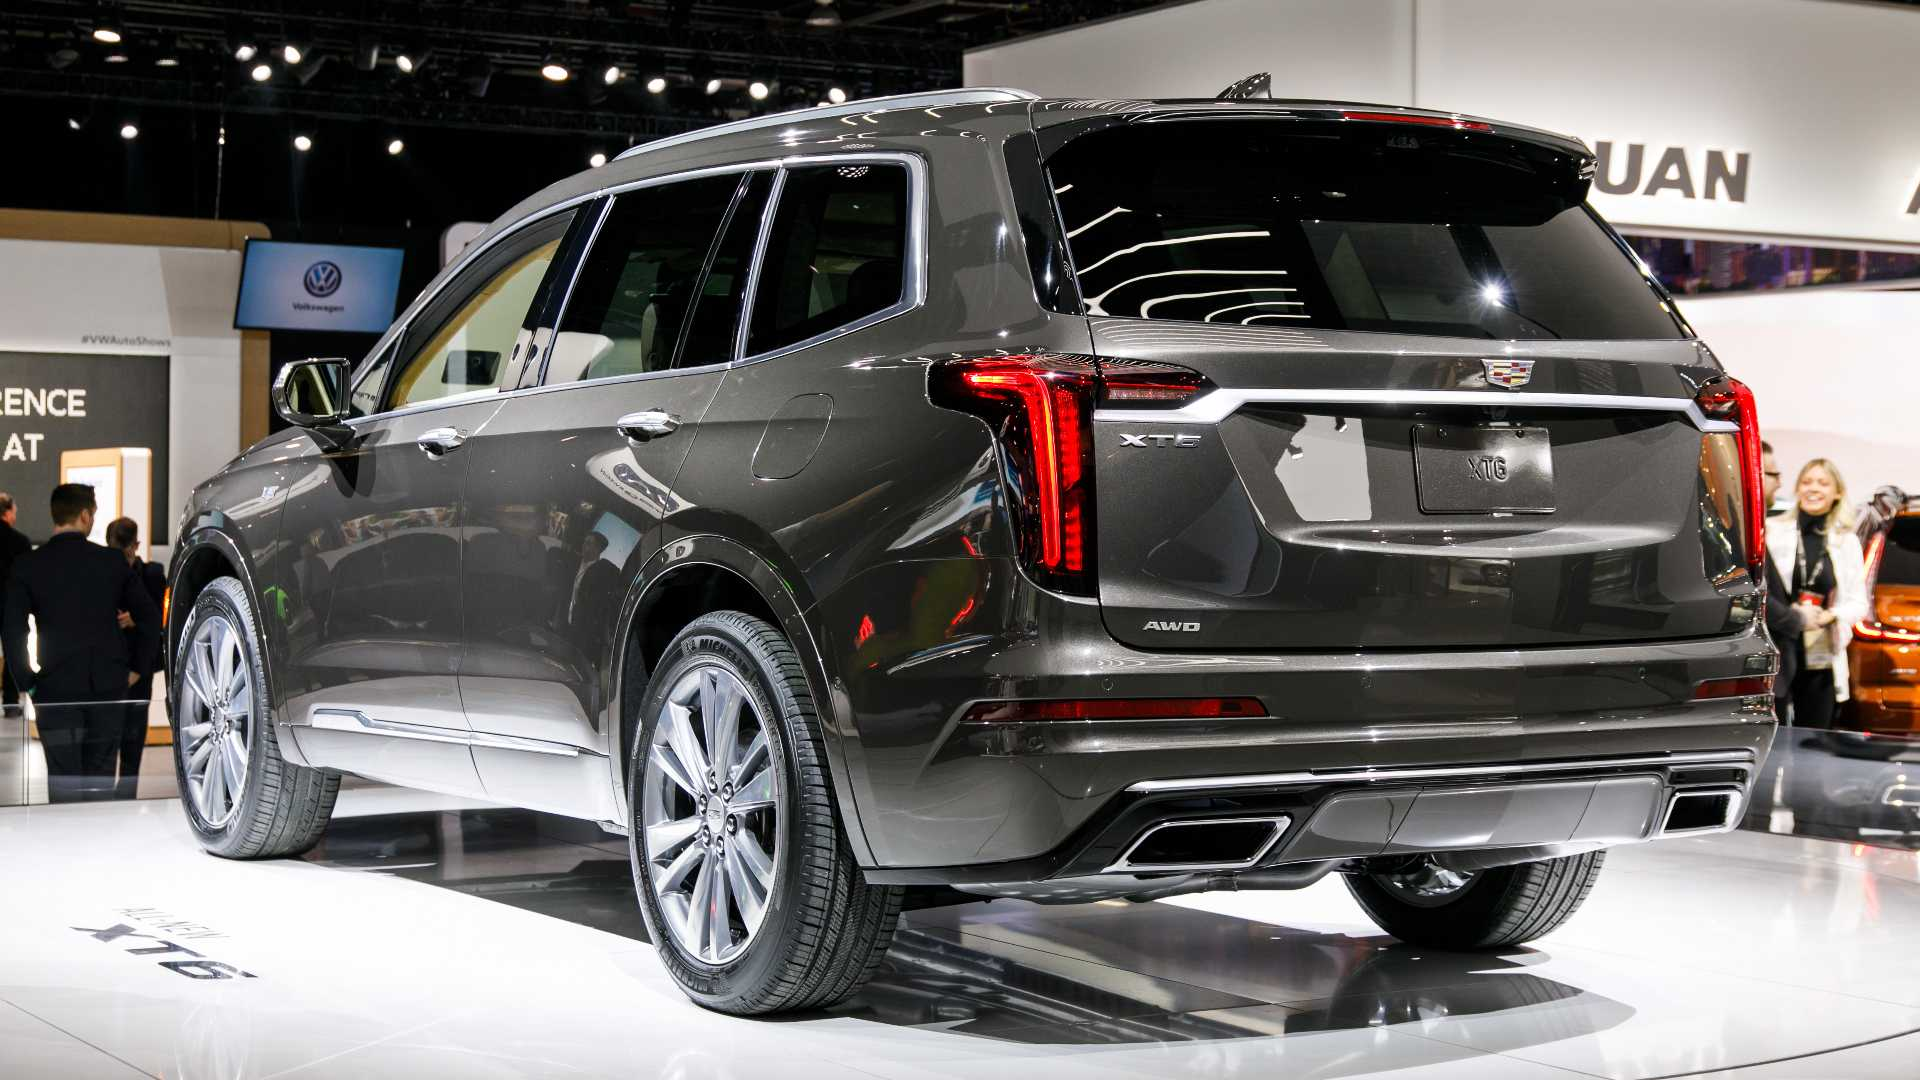 2020 Cadillac Xt6 Three Row Cuv Debuts With V6 Power No Super Cruise